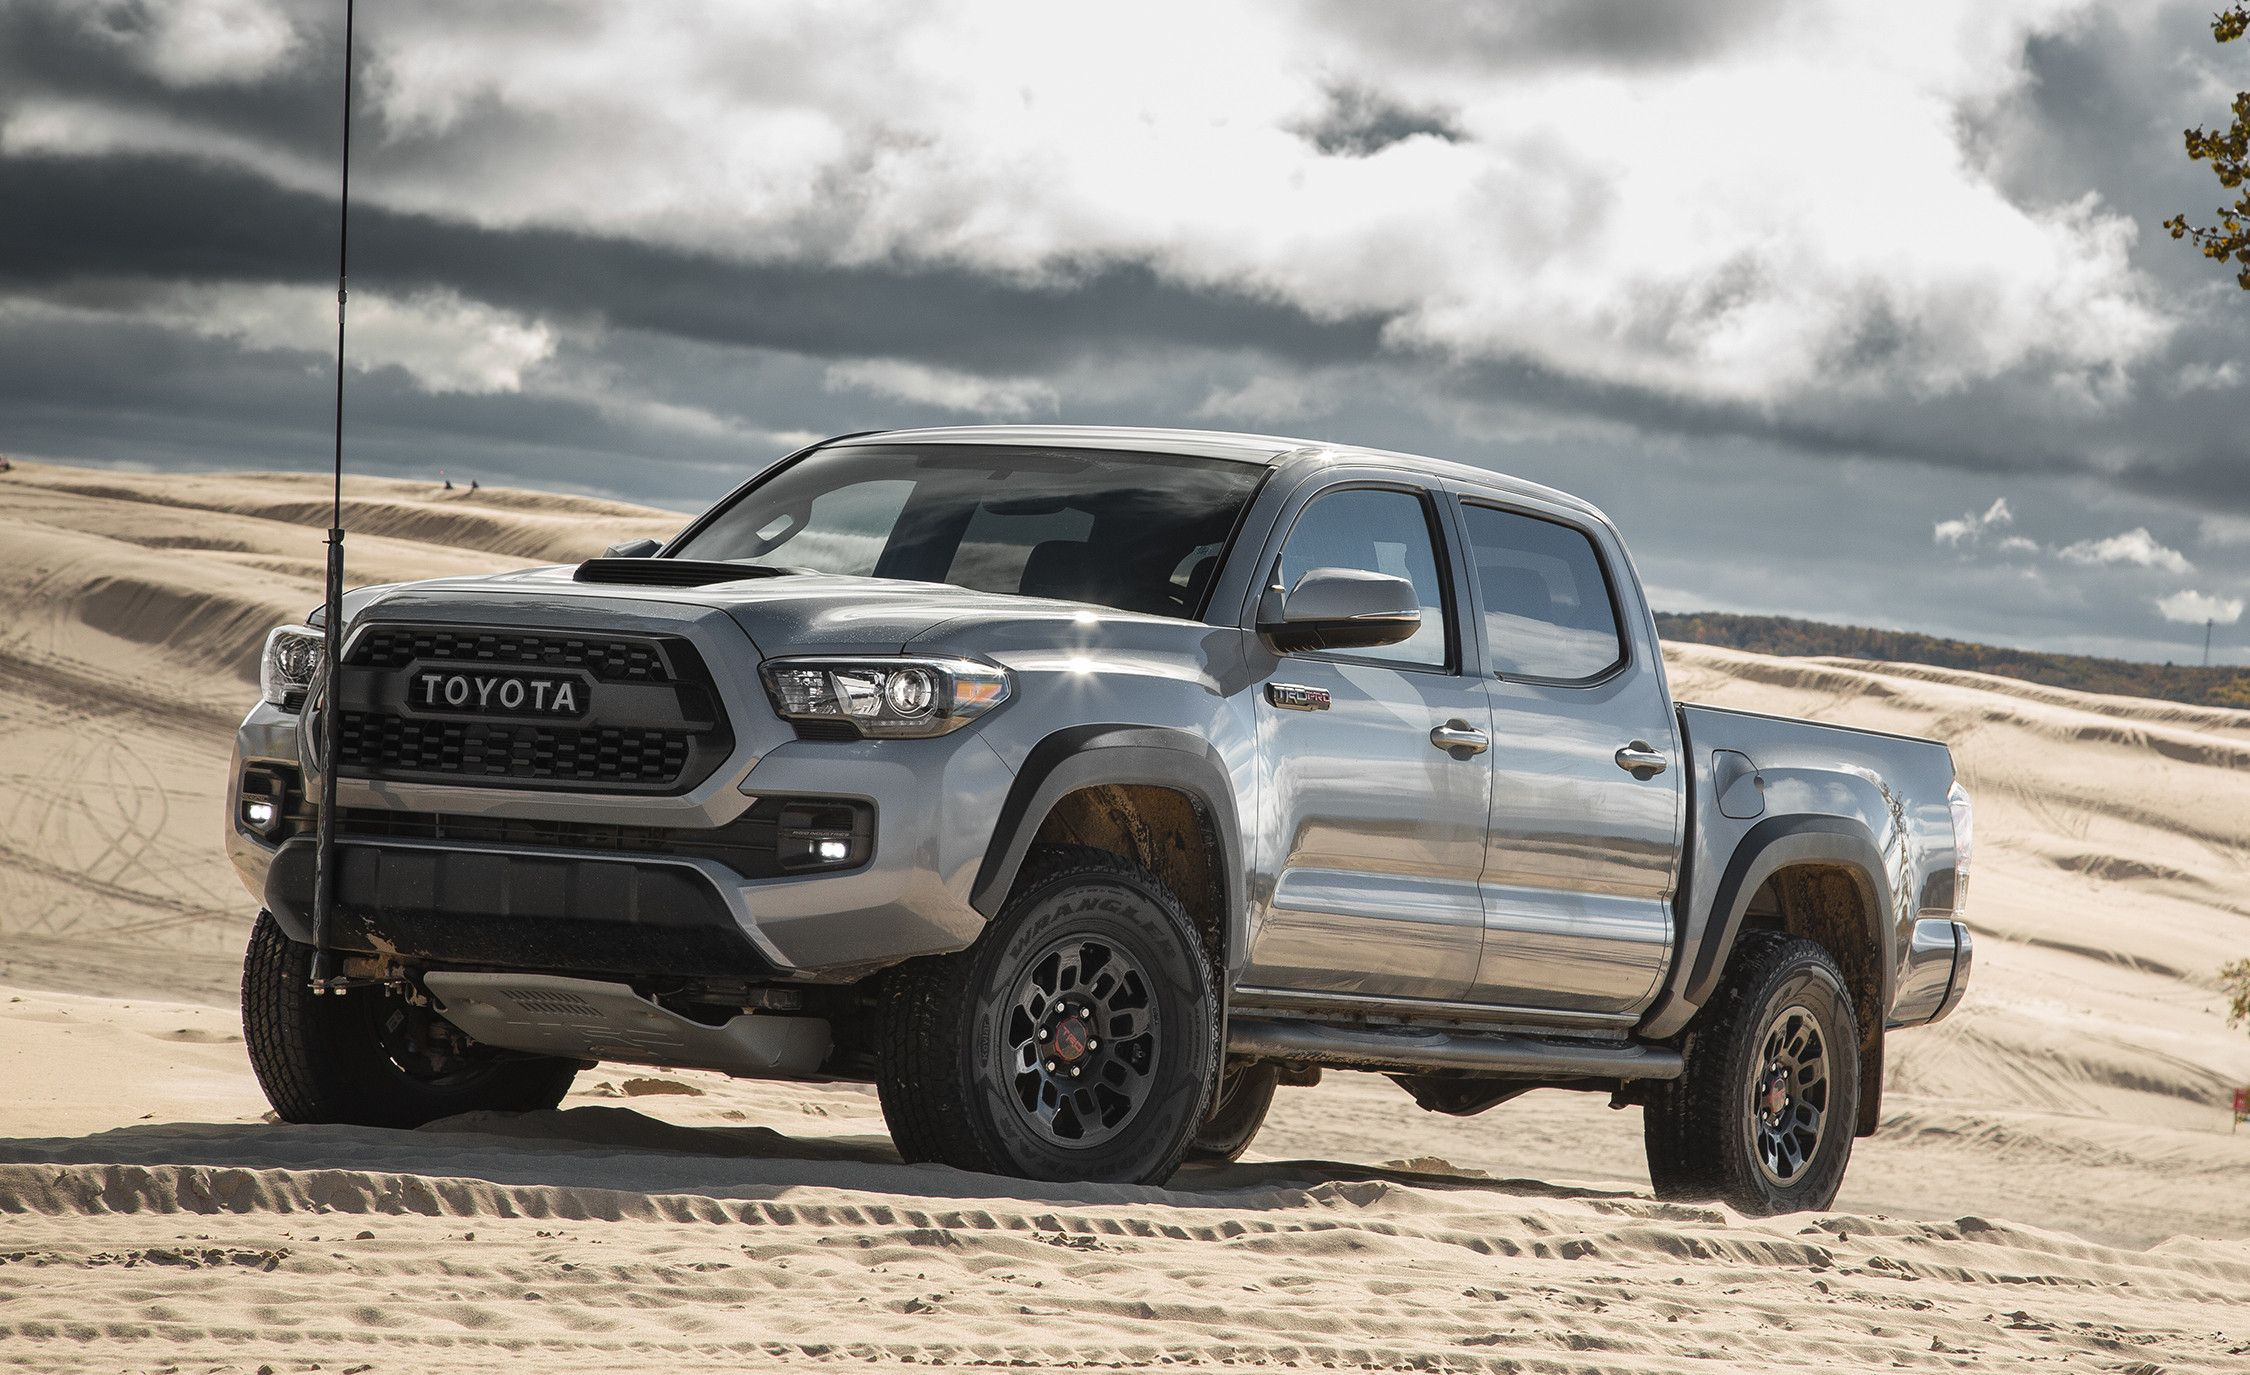 Toyota Tacoma 2020 Diesel New Review In 2020 Toyota Tacoma Sport Toyota Tacoma Trd Pro Toyota Tacoma Trd Sport